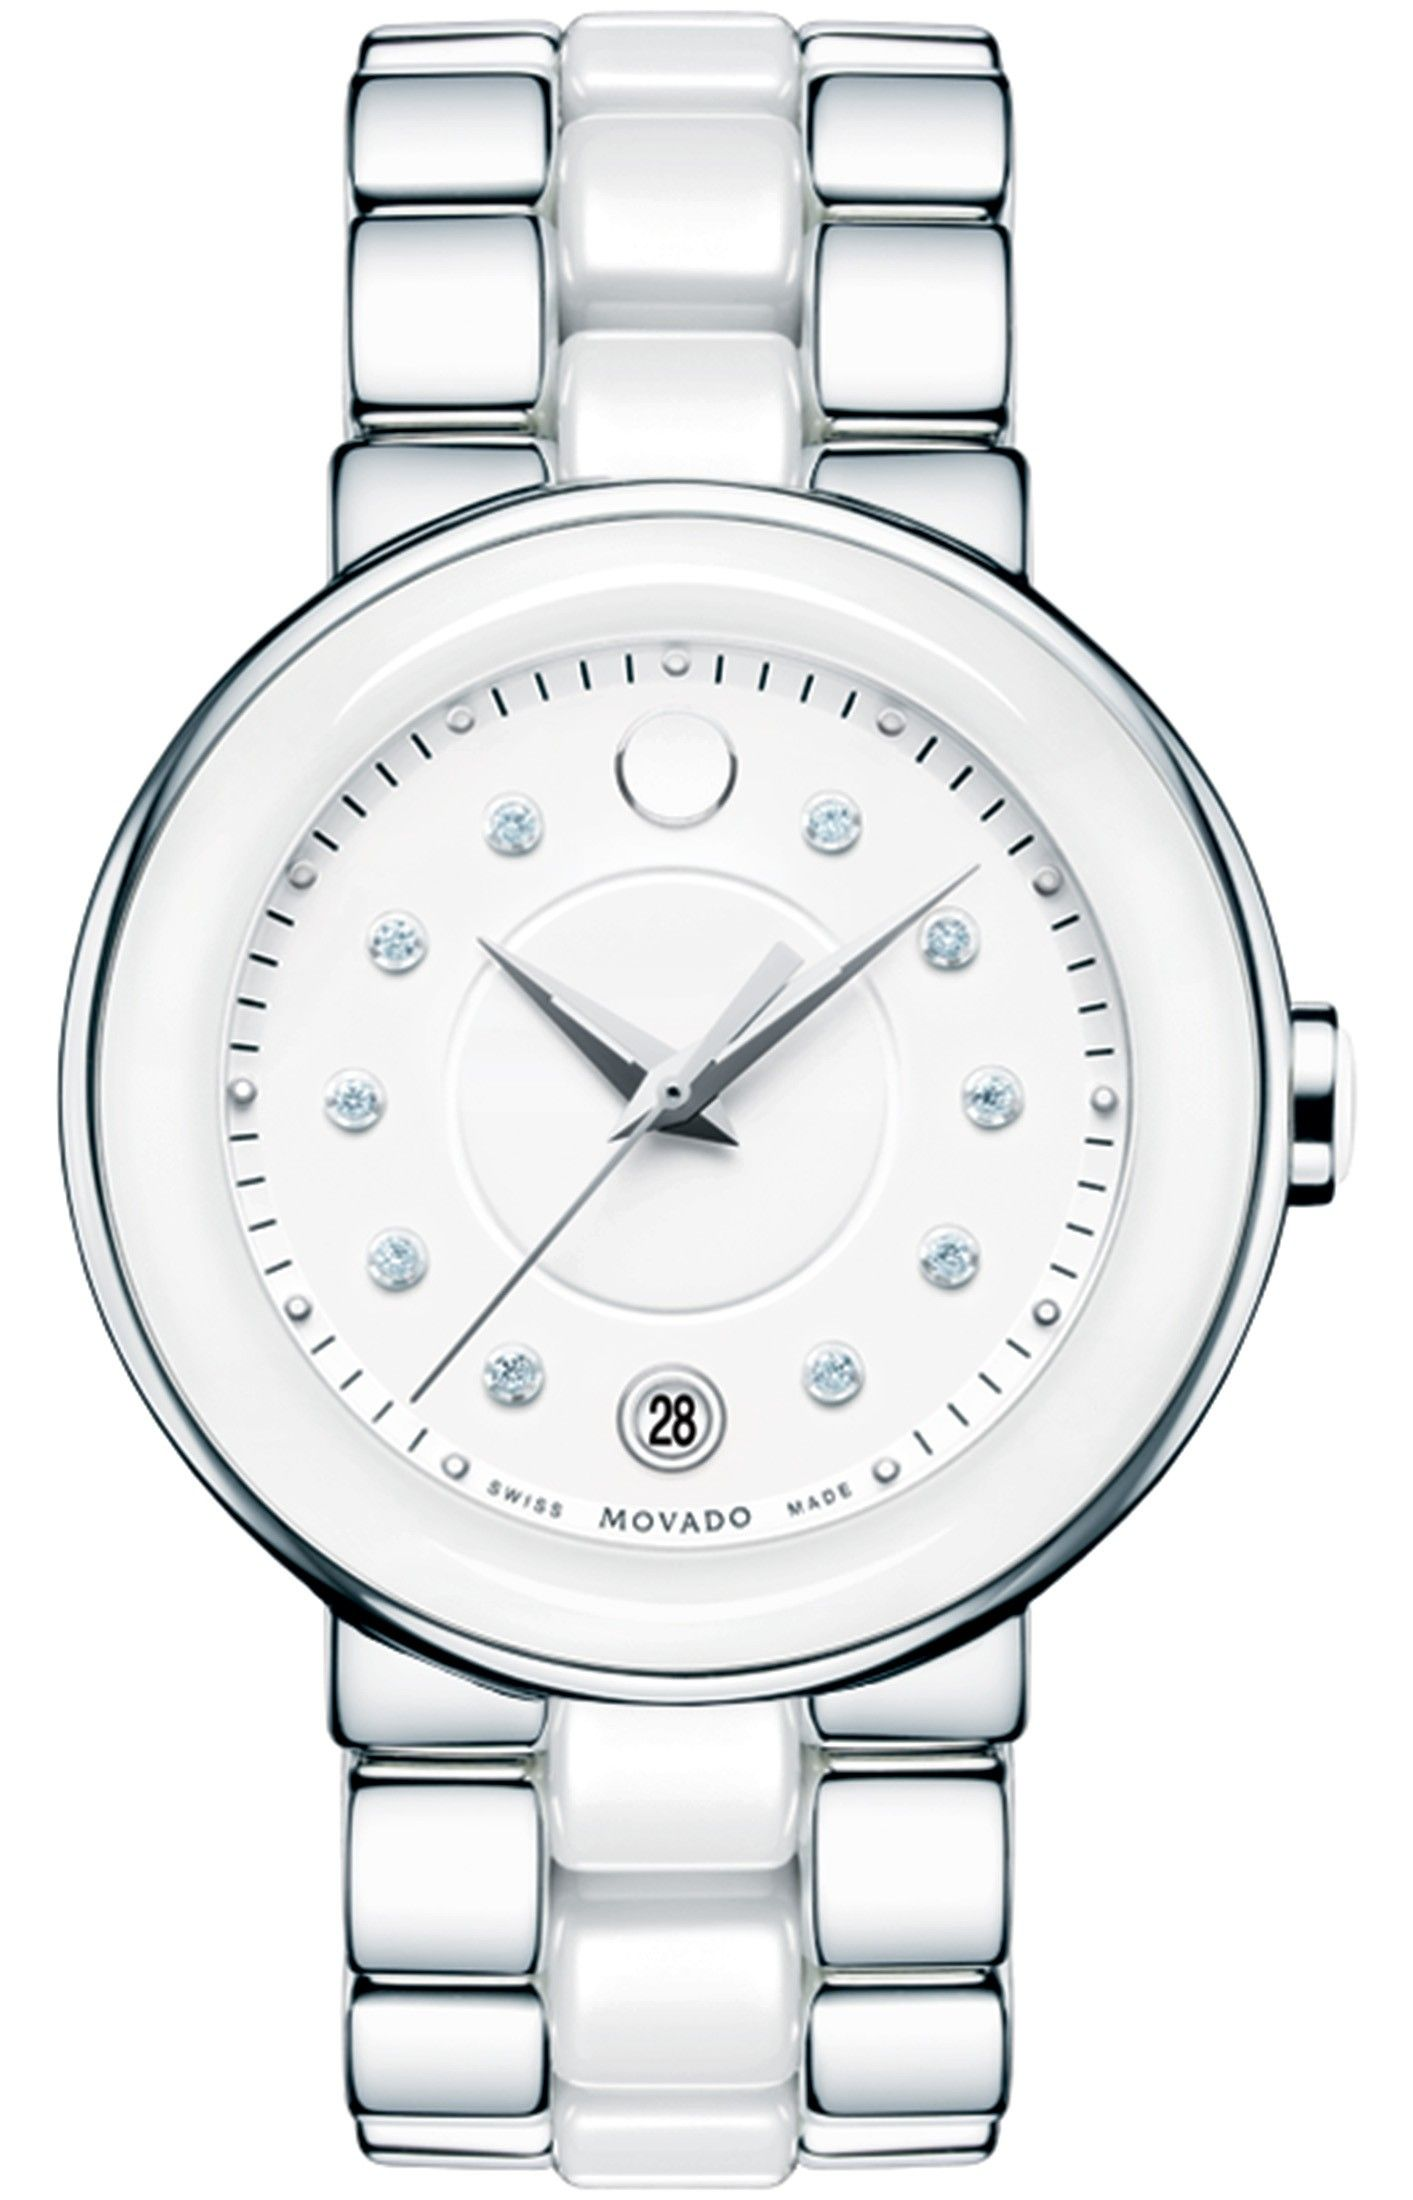 3c781a67e Cerena - Women's Cerena watch, 36 mm white ceramic and stainless steel  case, round white 3-hand dial with matching signature dot, 10 diamond  markers (0.065 ...